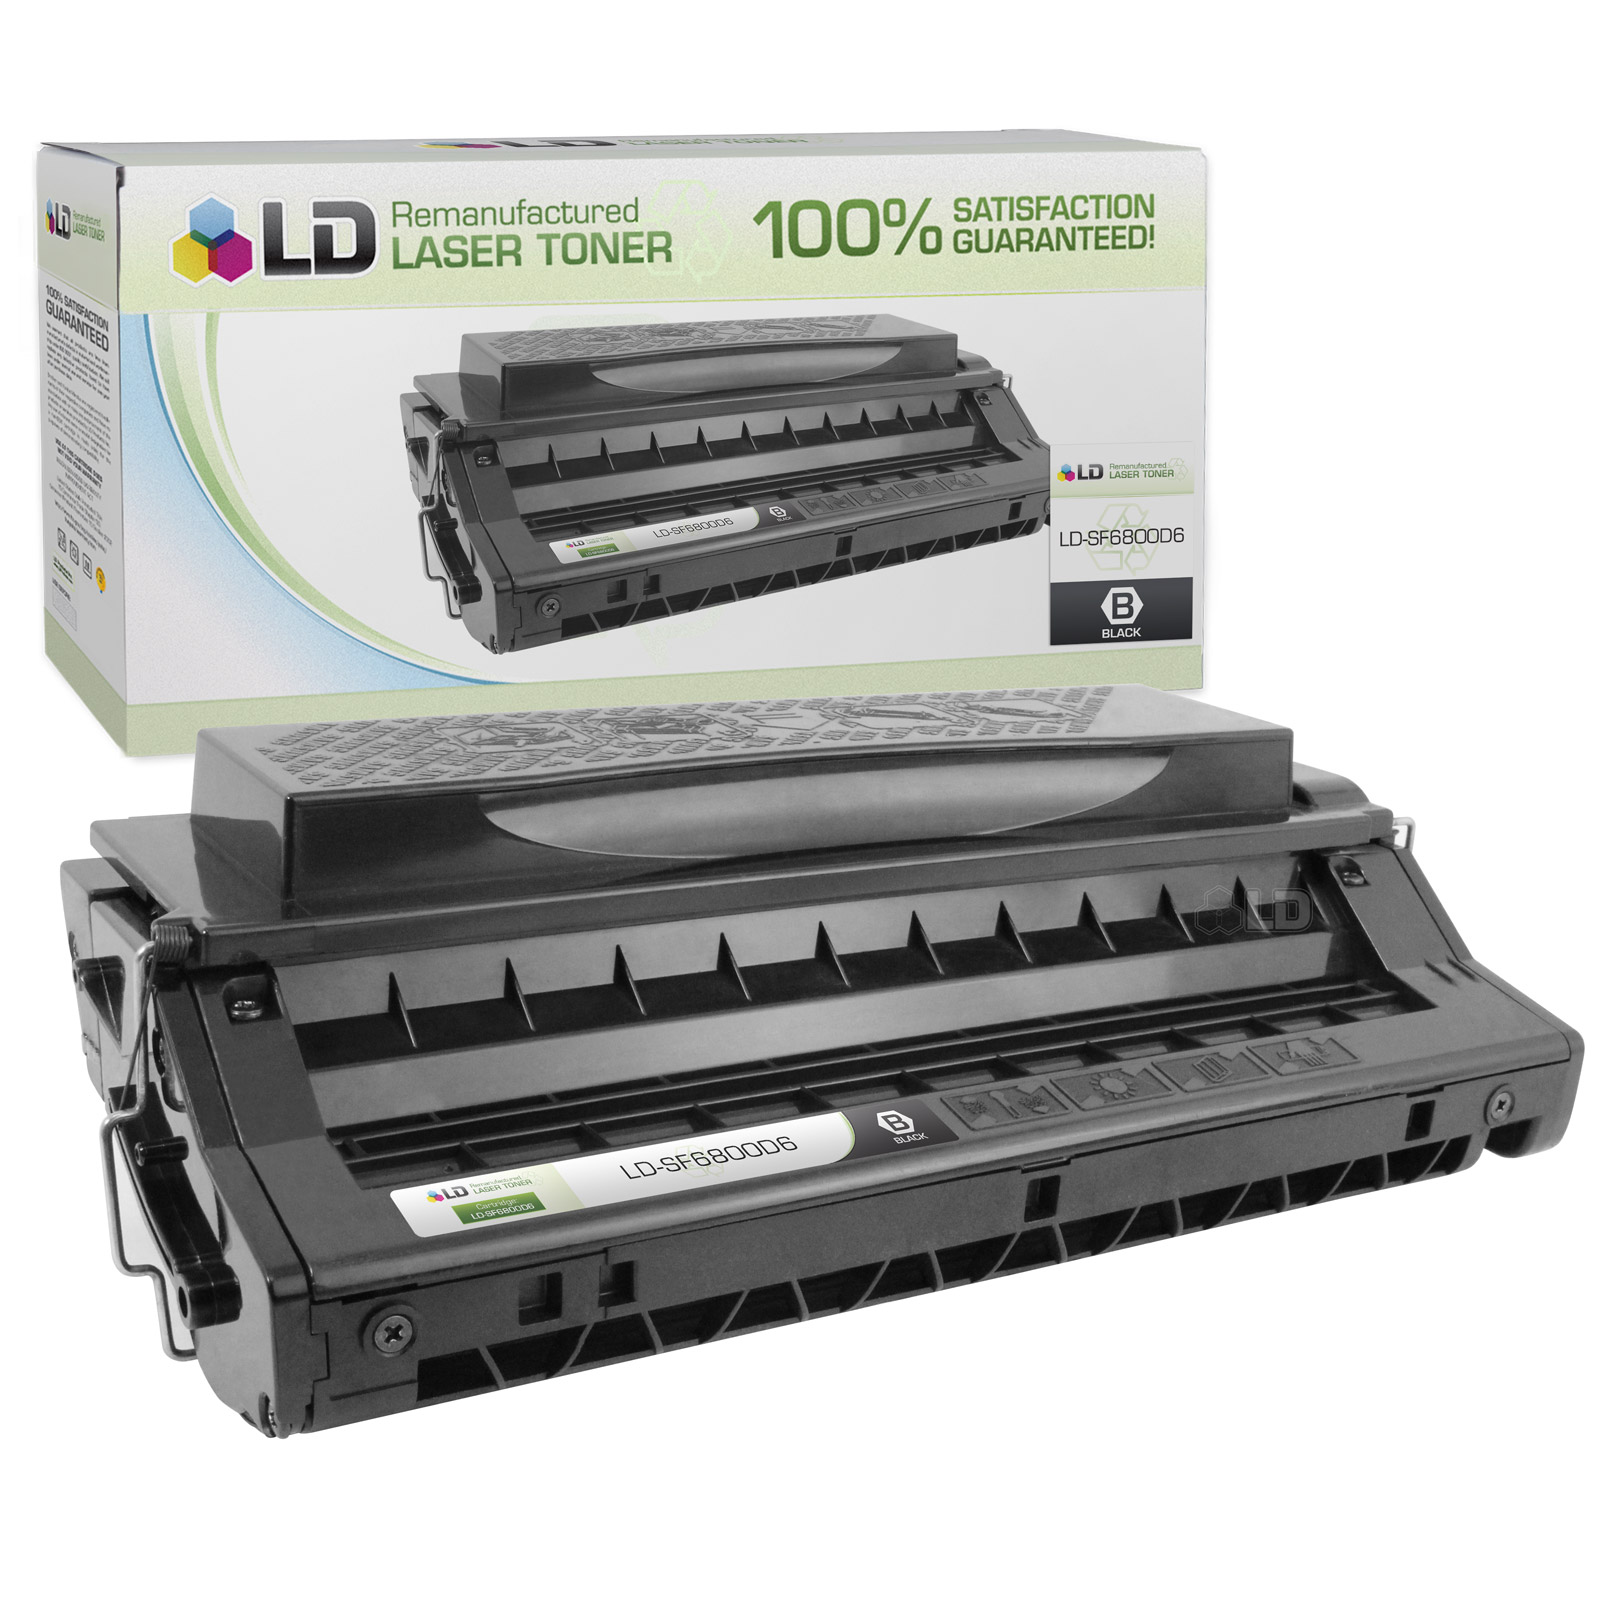 LD© Samsung Remanufactured Replacement SF-6800D6 Black Laser Toner Cartridge for use in Samsung MSYS 730, MSYS